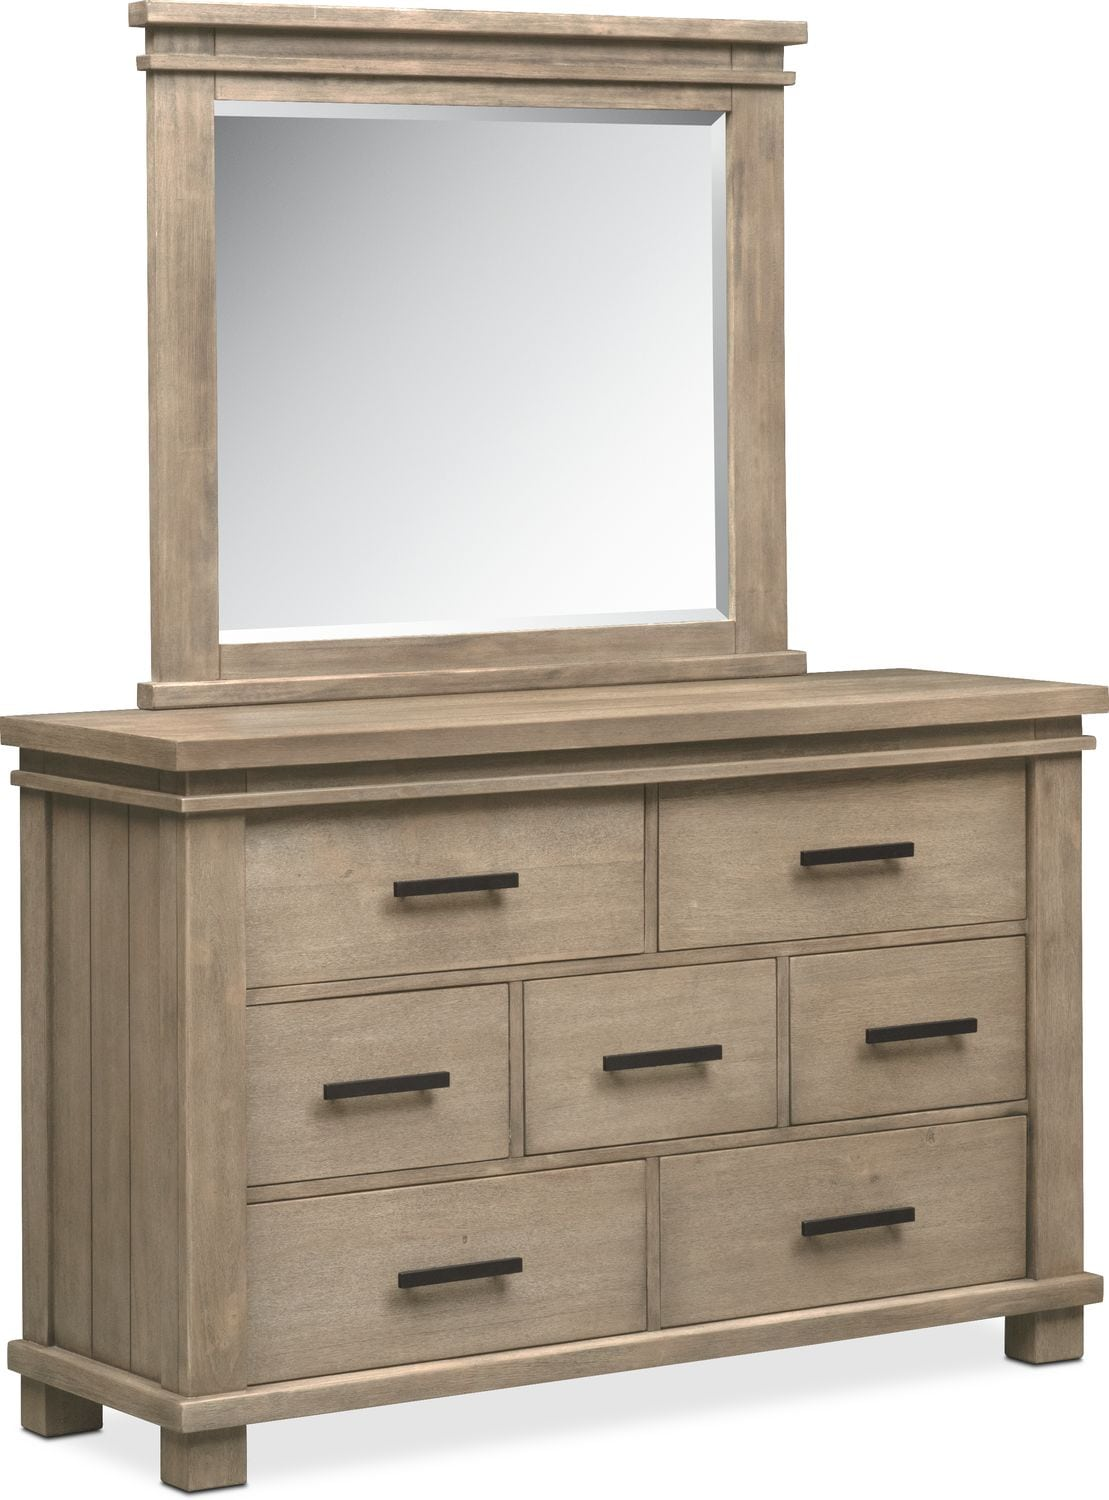 Kids Furniture - Tribeca Youth Dresser and Mirror